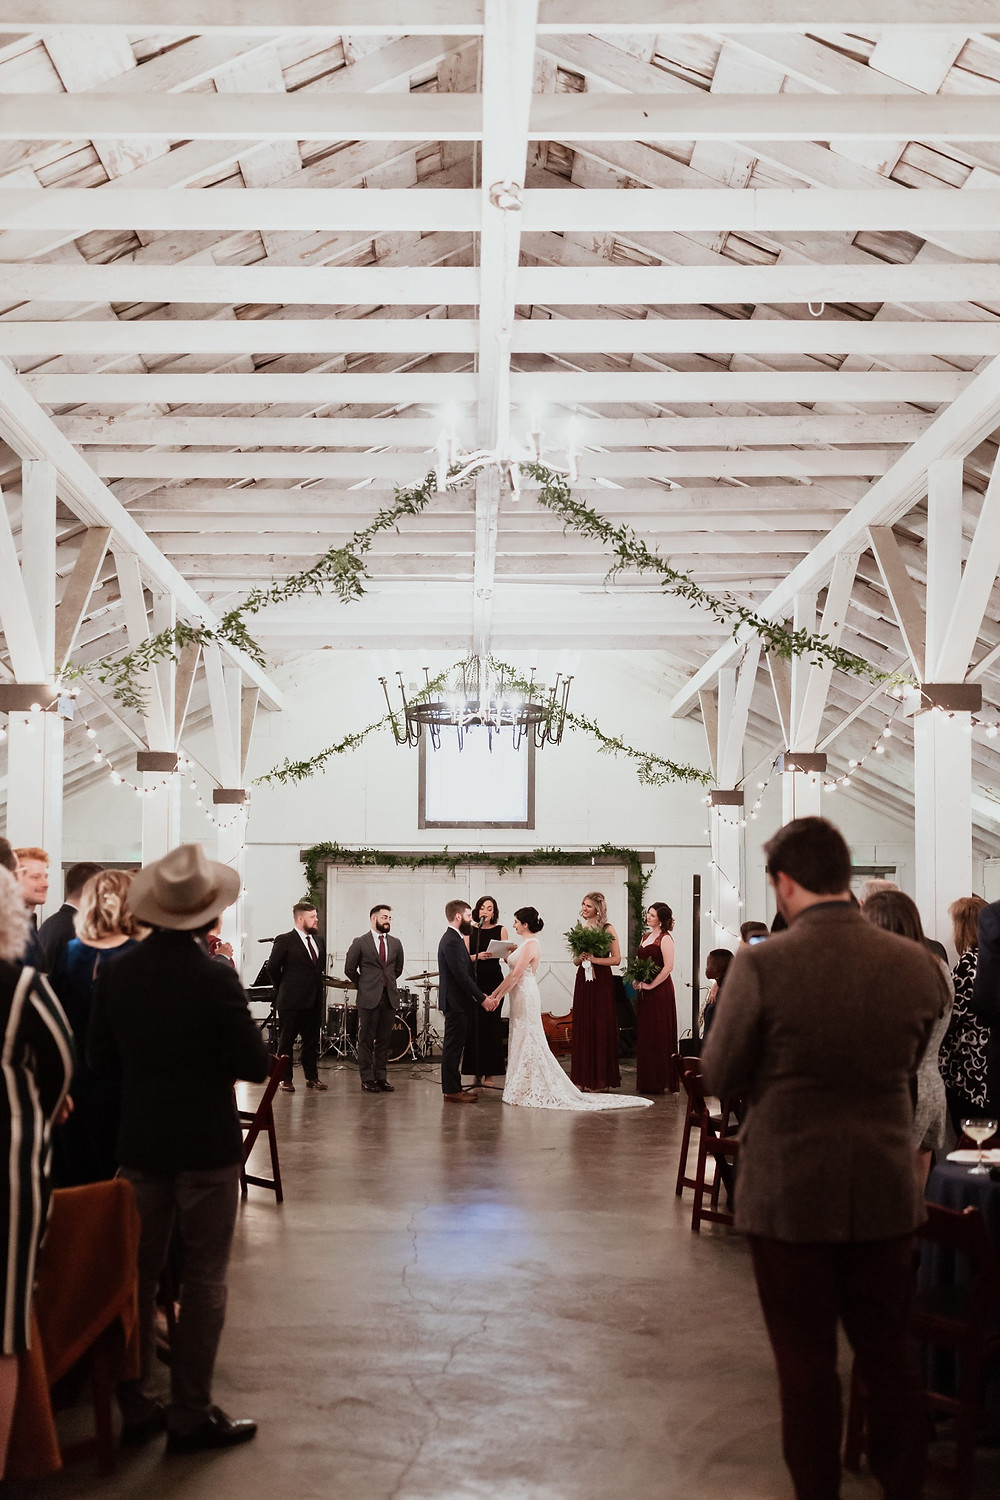 Ceremony photo from a winter wedding at Dairyland in Snohomish, a wedding venue near Seattle, WA. | My Snohomish Wedding | Snohomish Wedding Planning